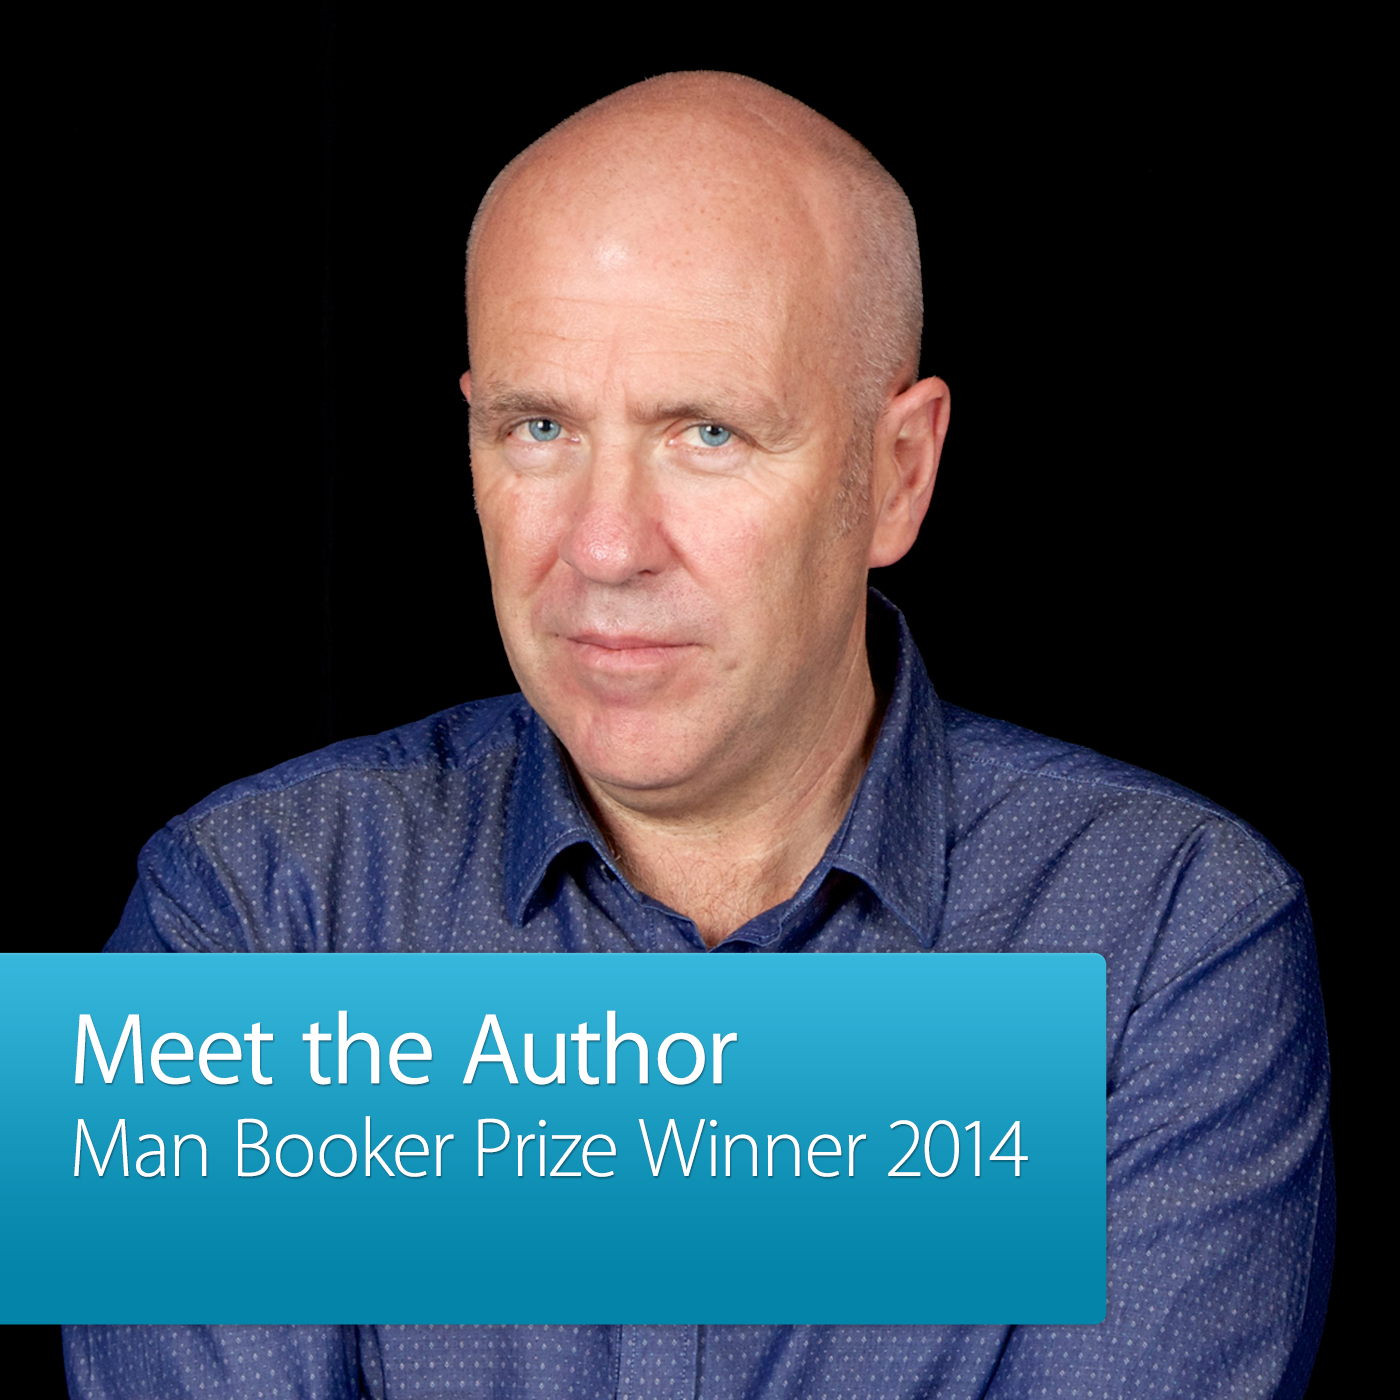 Man Booker Prize Winner 2014: Meet the Author